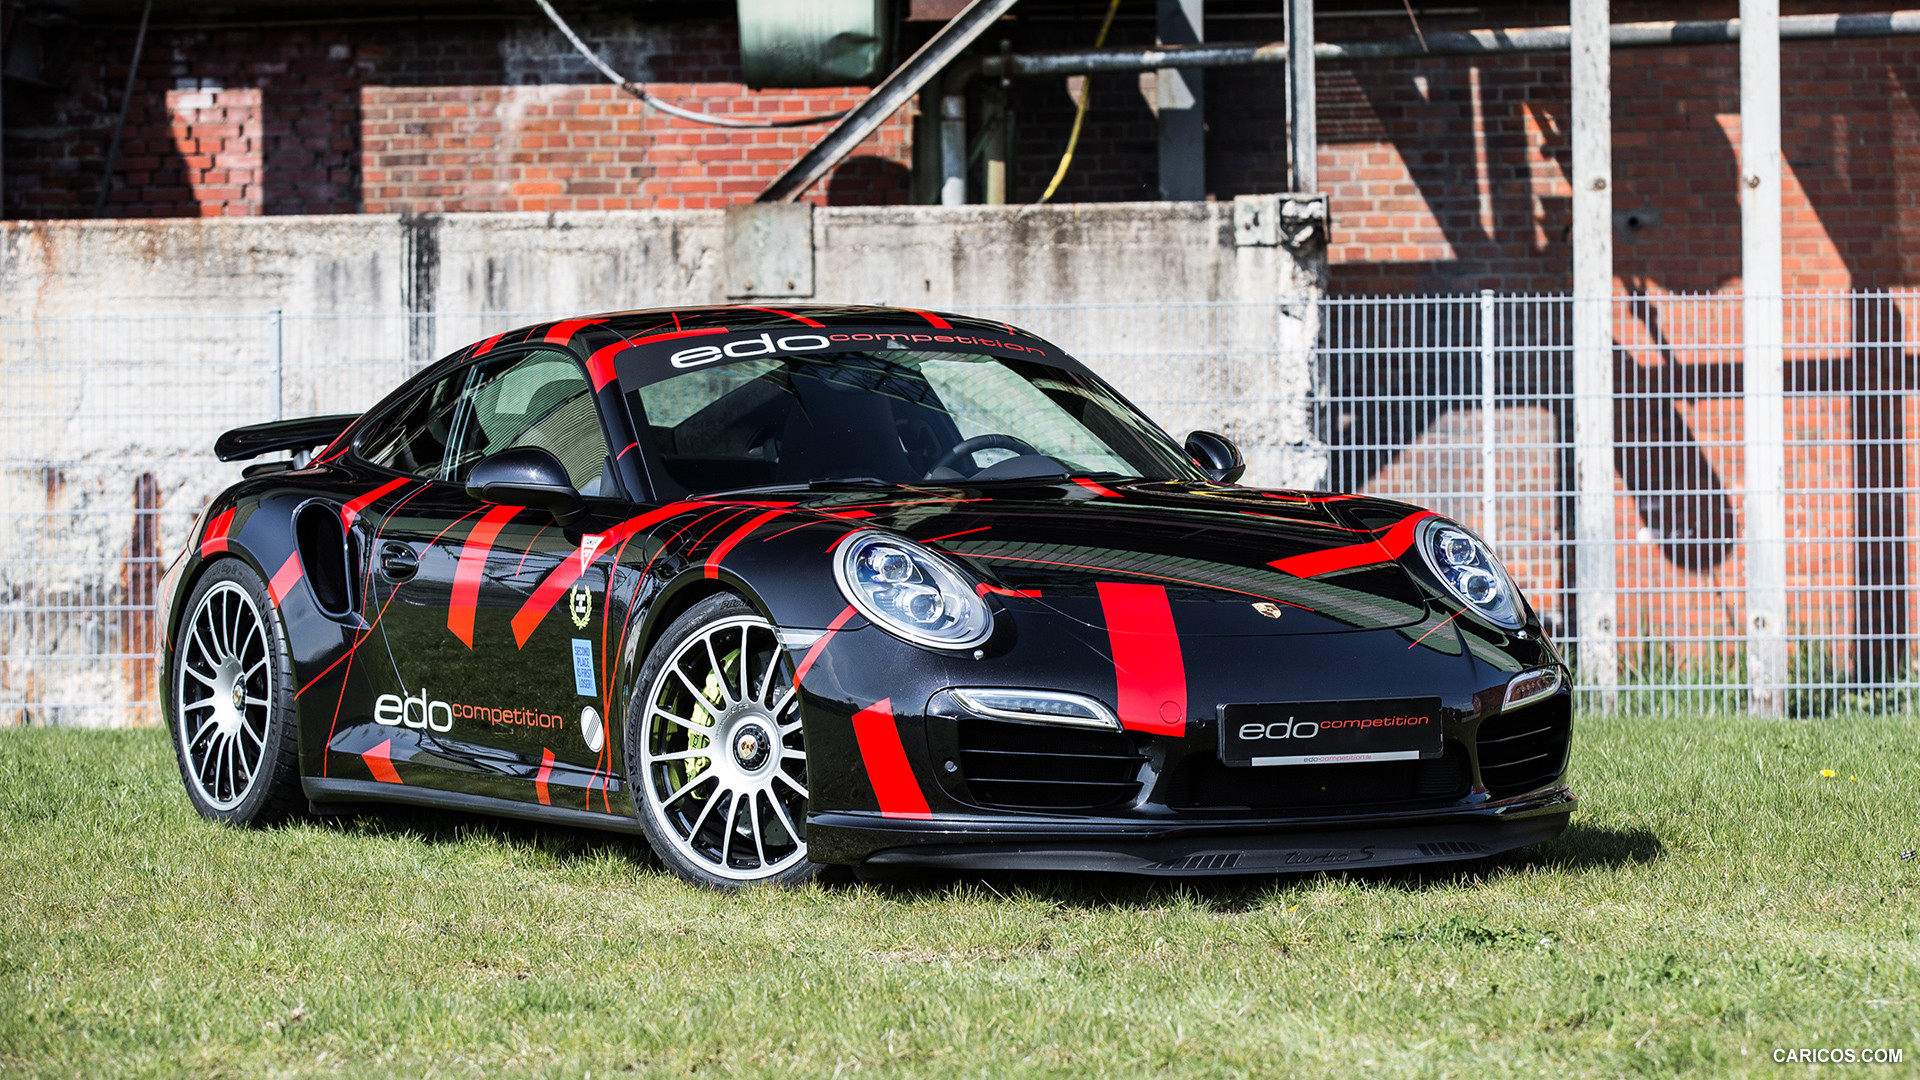 Edo Competition 911 Turbo S photo 118566